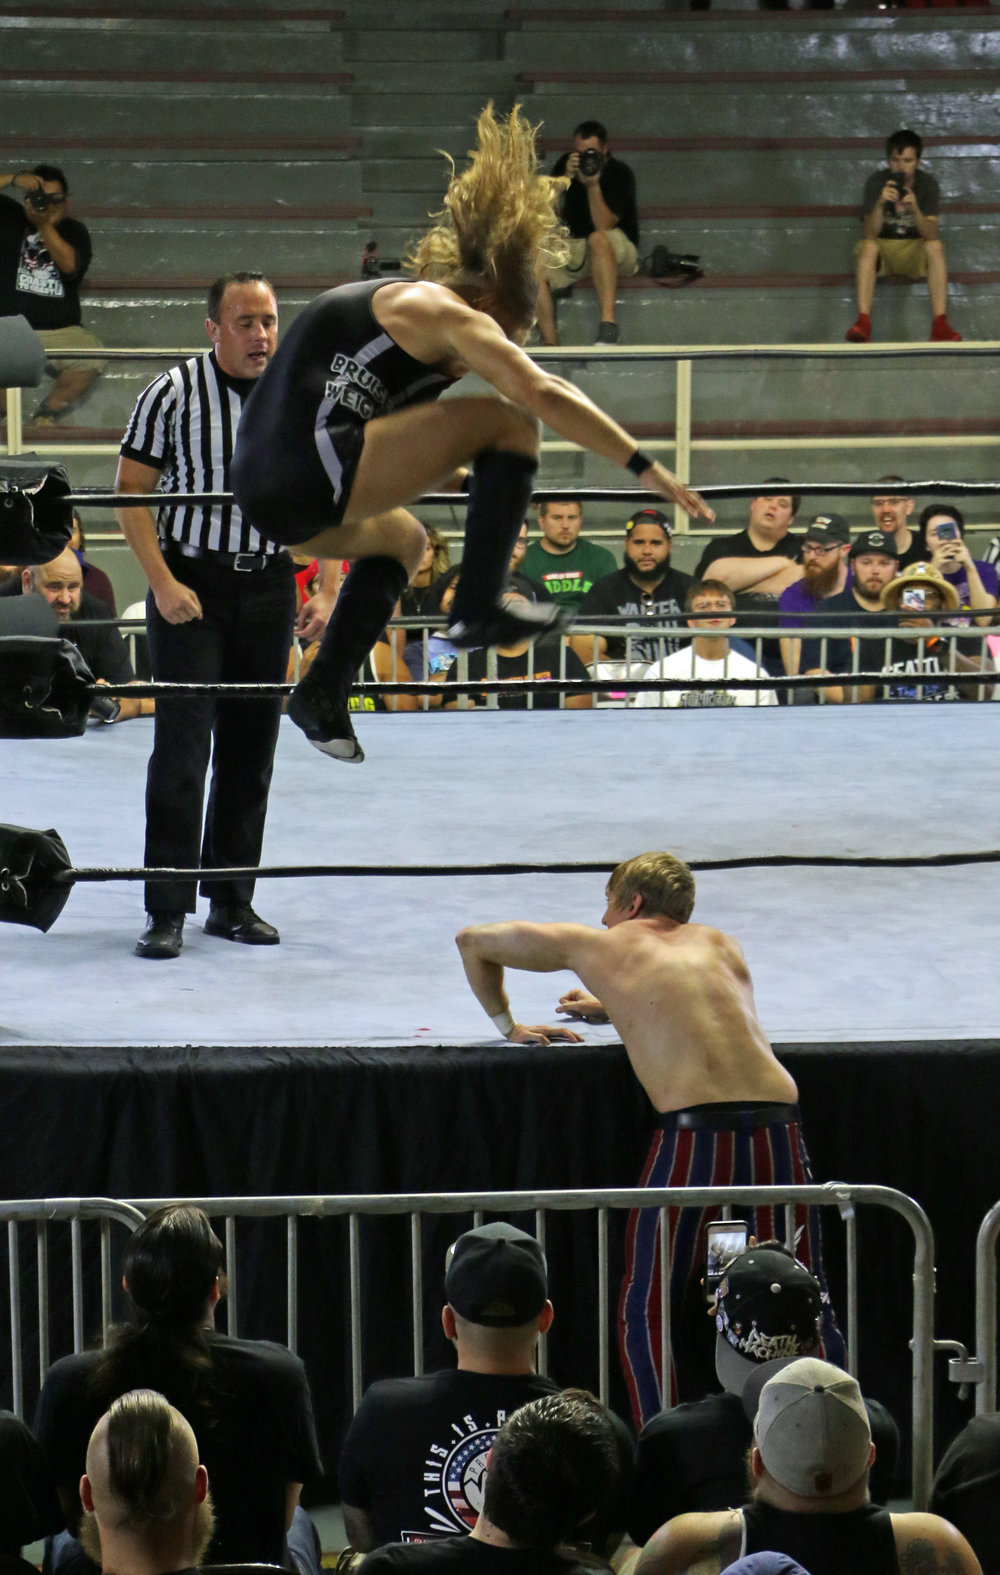 Pete Dunne goes to stomp the arm of Flash Morgan Webster on the ring apron.